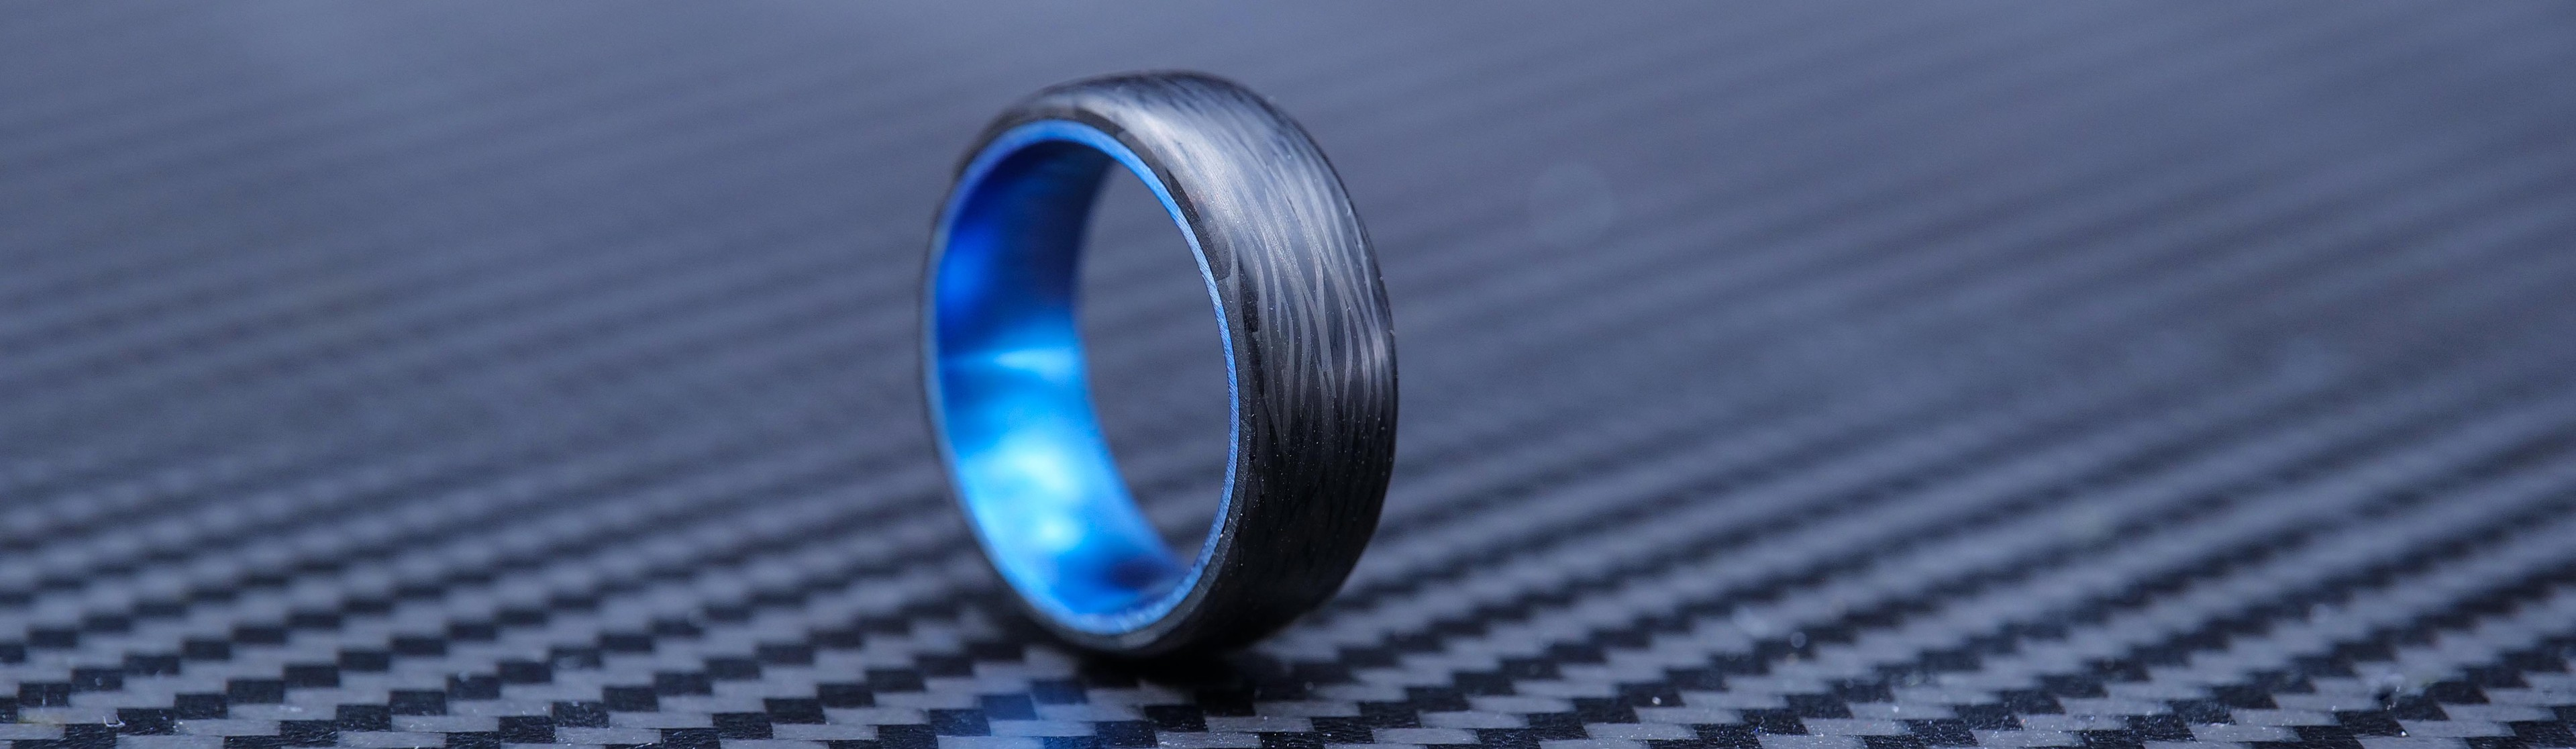 The Hydro Carbon Fiber with Anodized Aluminum Liner